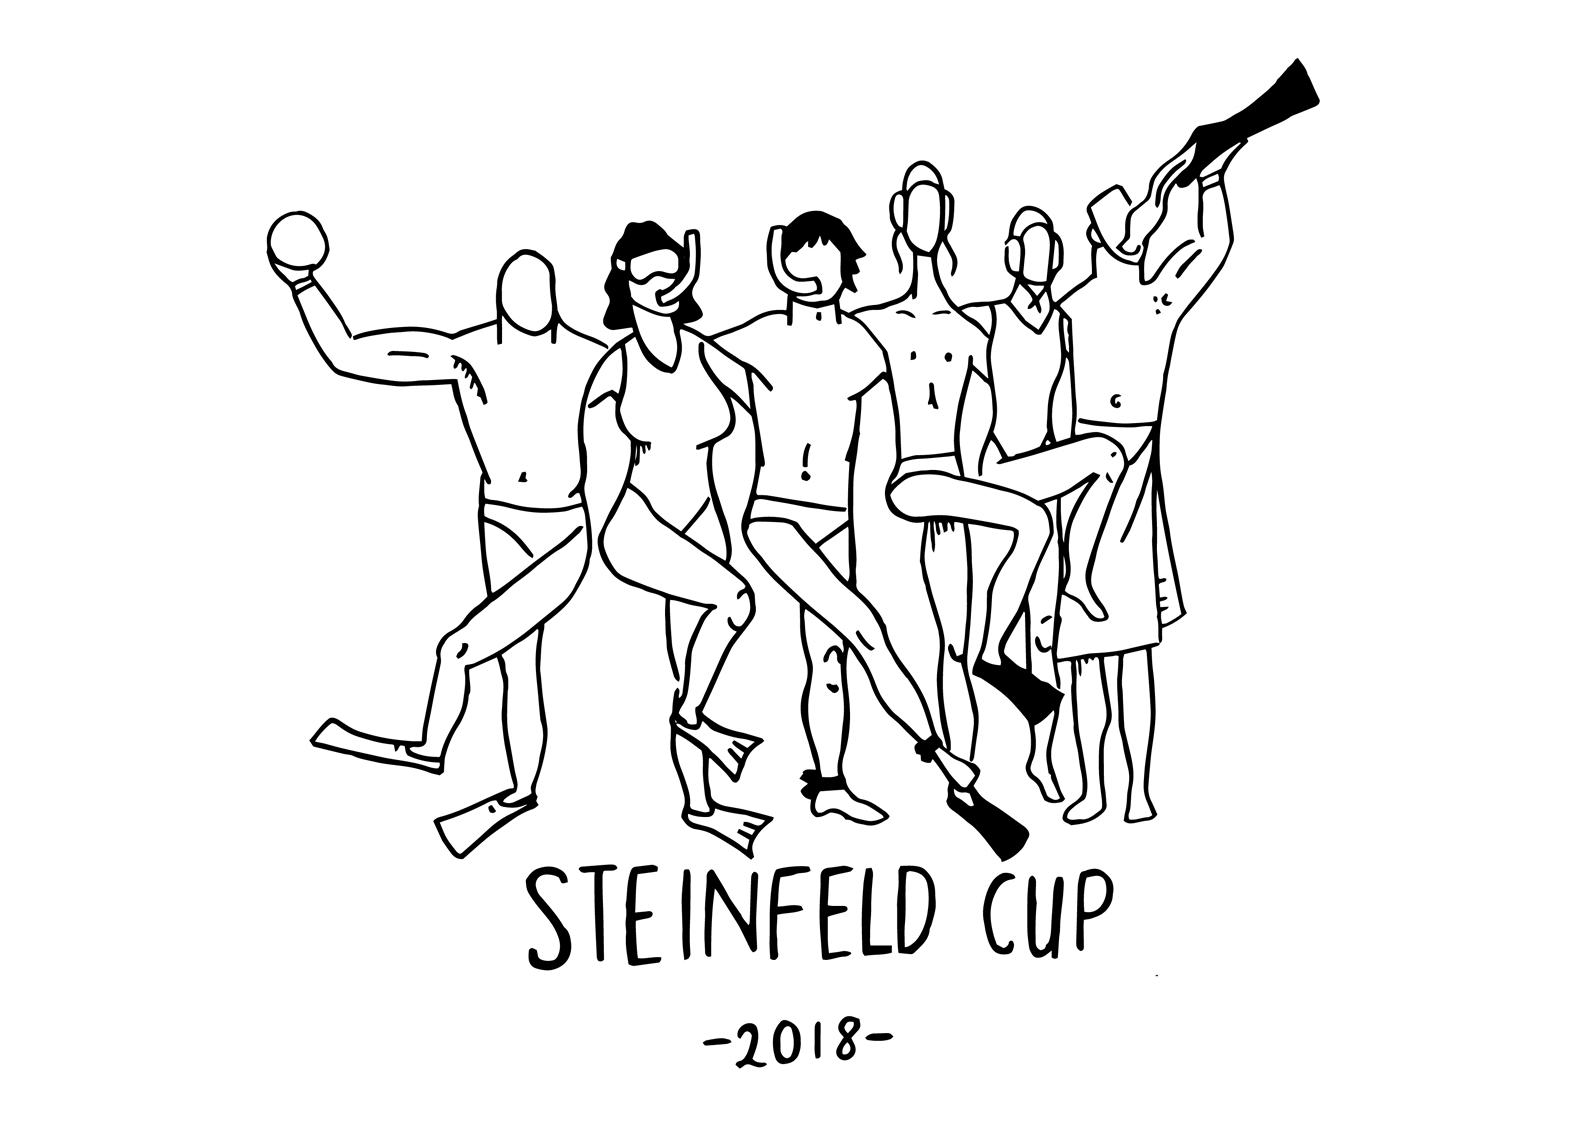 Steinfeld Cup 2018